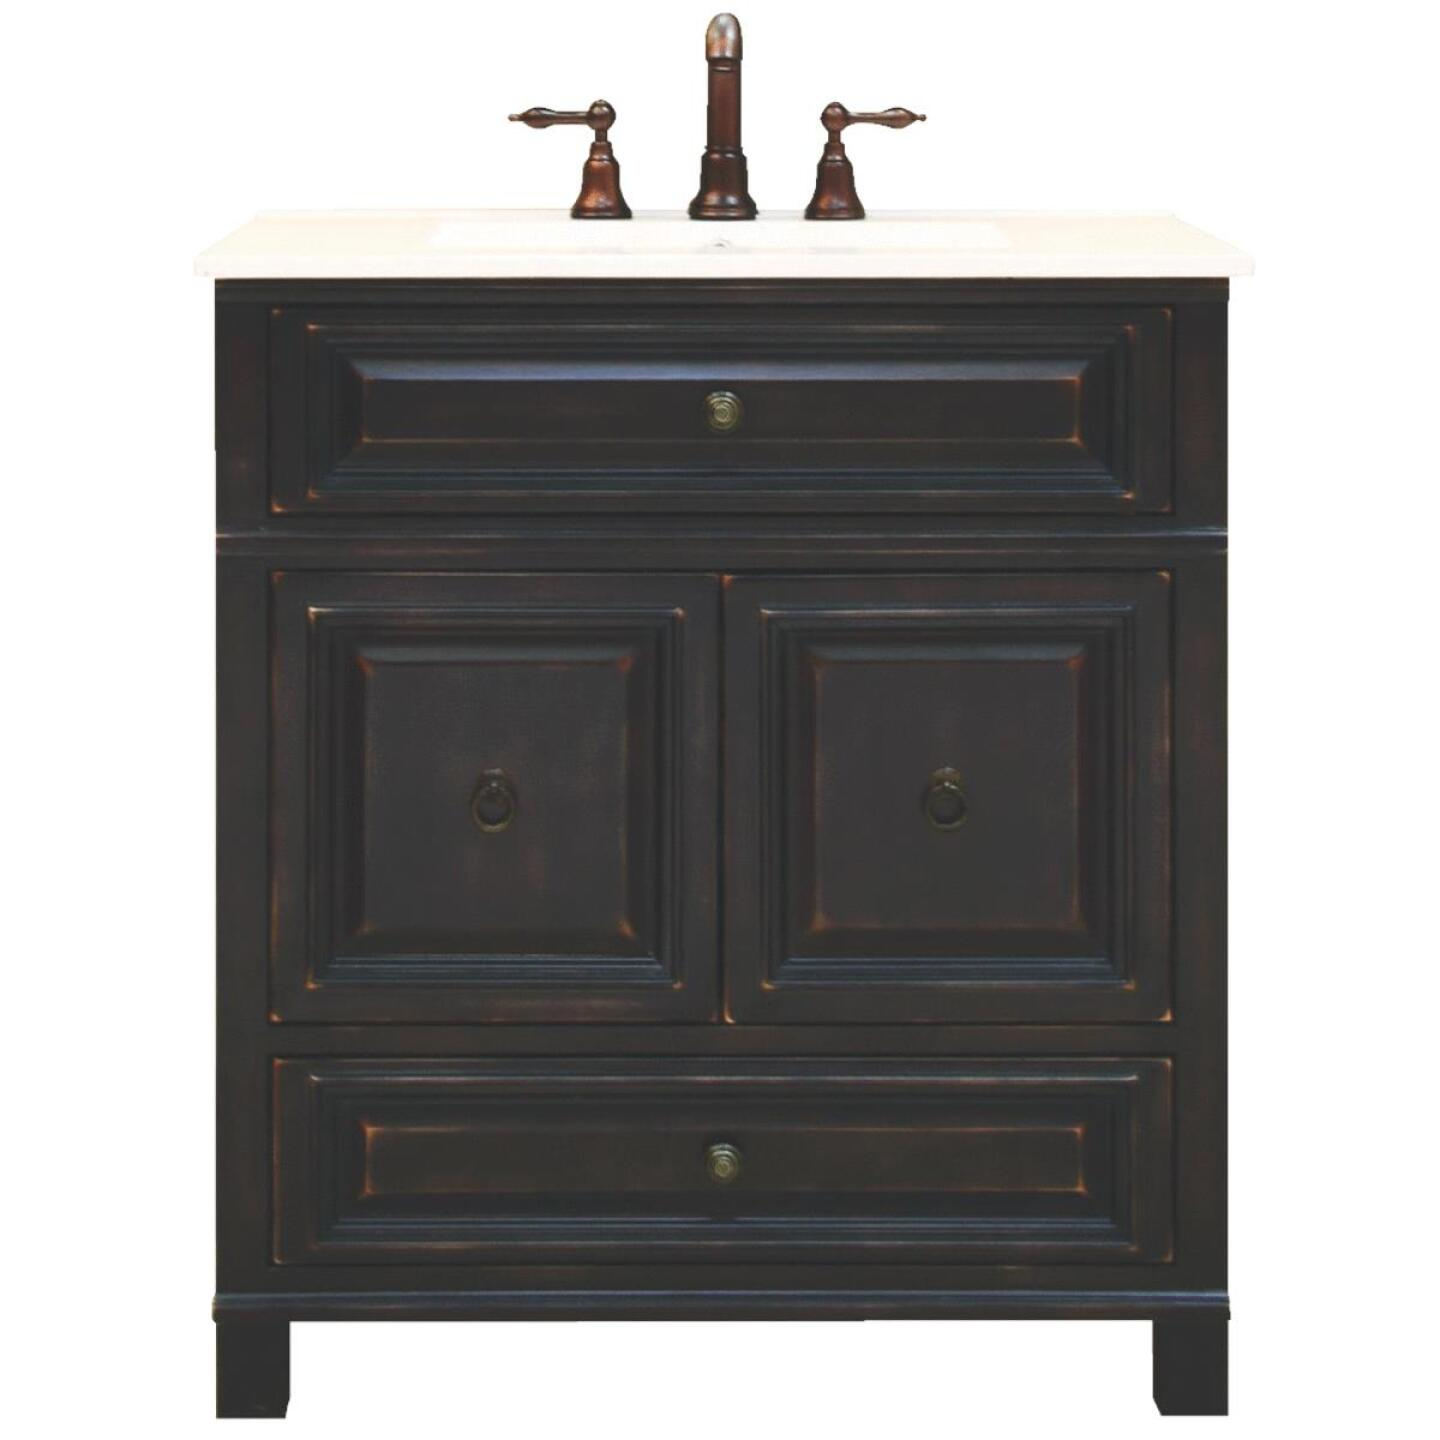 Sunny Wood Barton Hill Black Onyx 30 In. W x 34 In. H x 21 In. D Vanity Base, 2 Door/1 Drawer Image 60